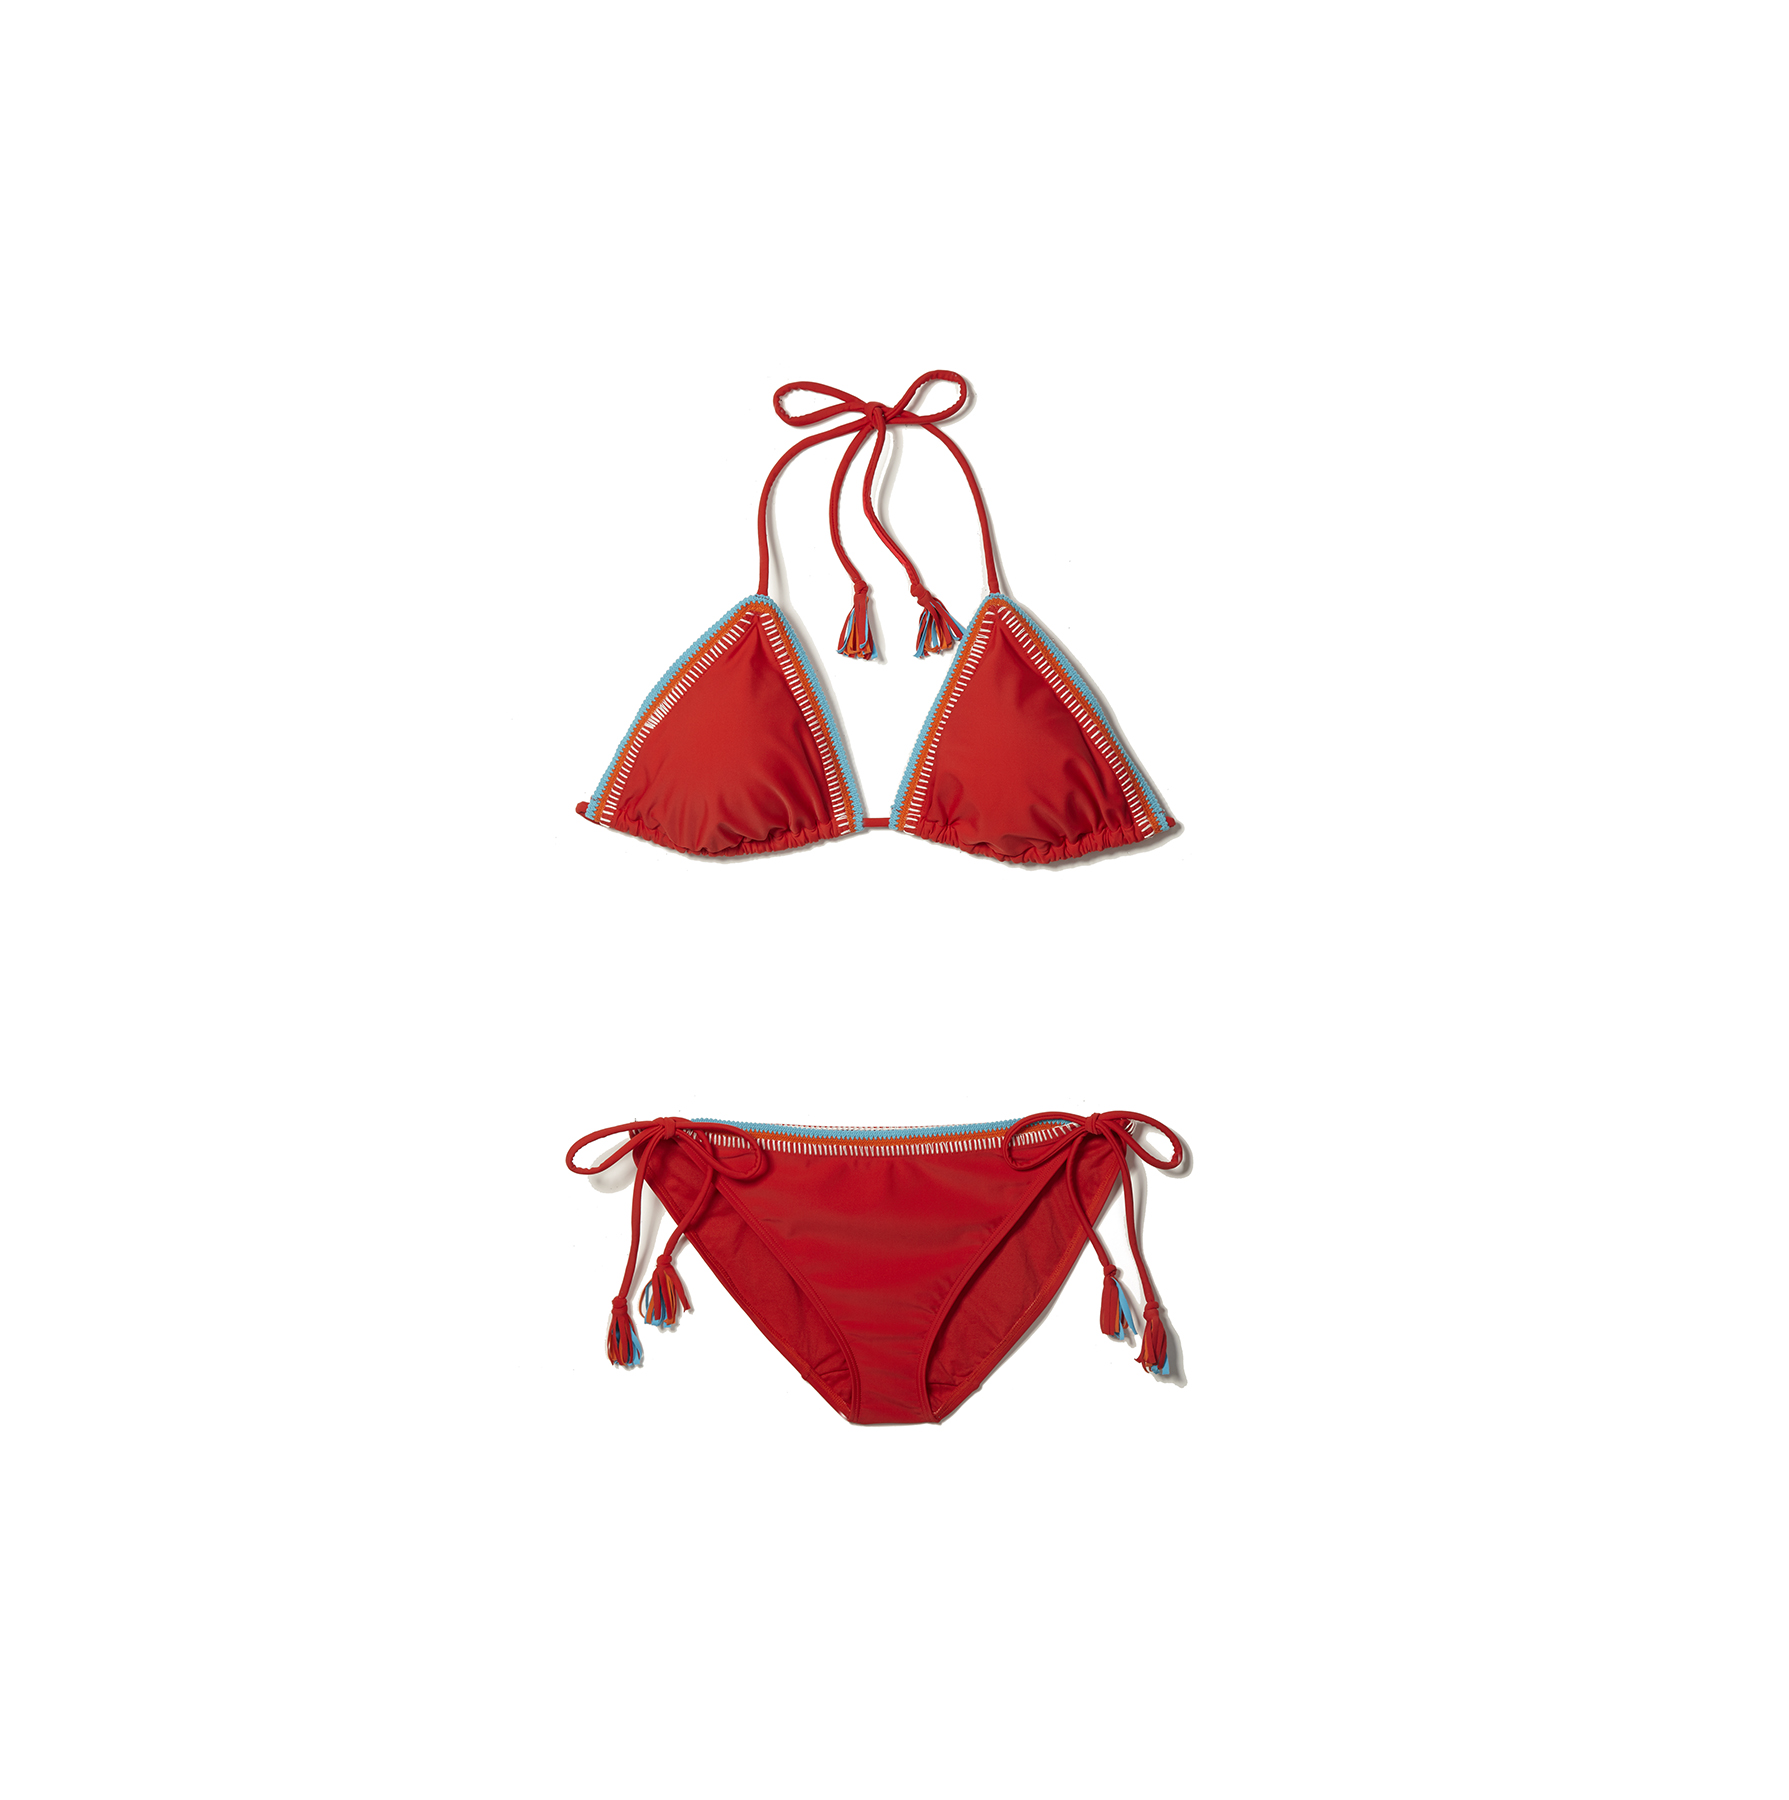 Lane Bryant Red Bikini